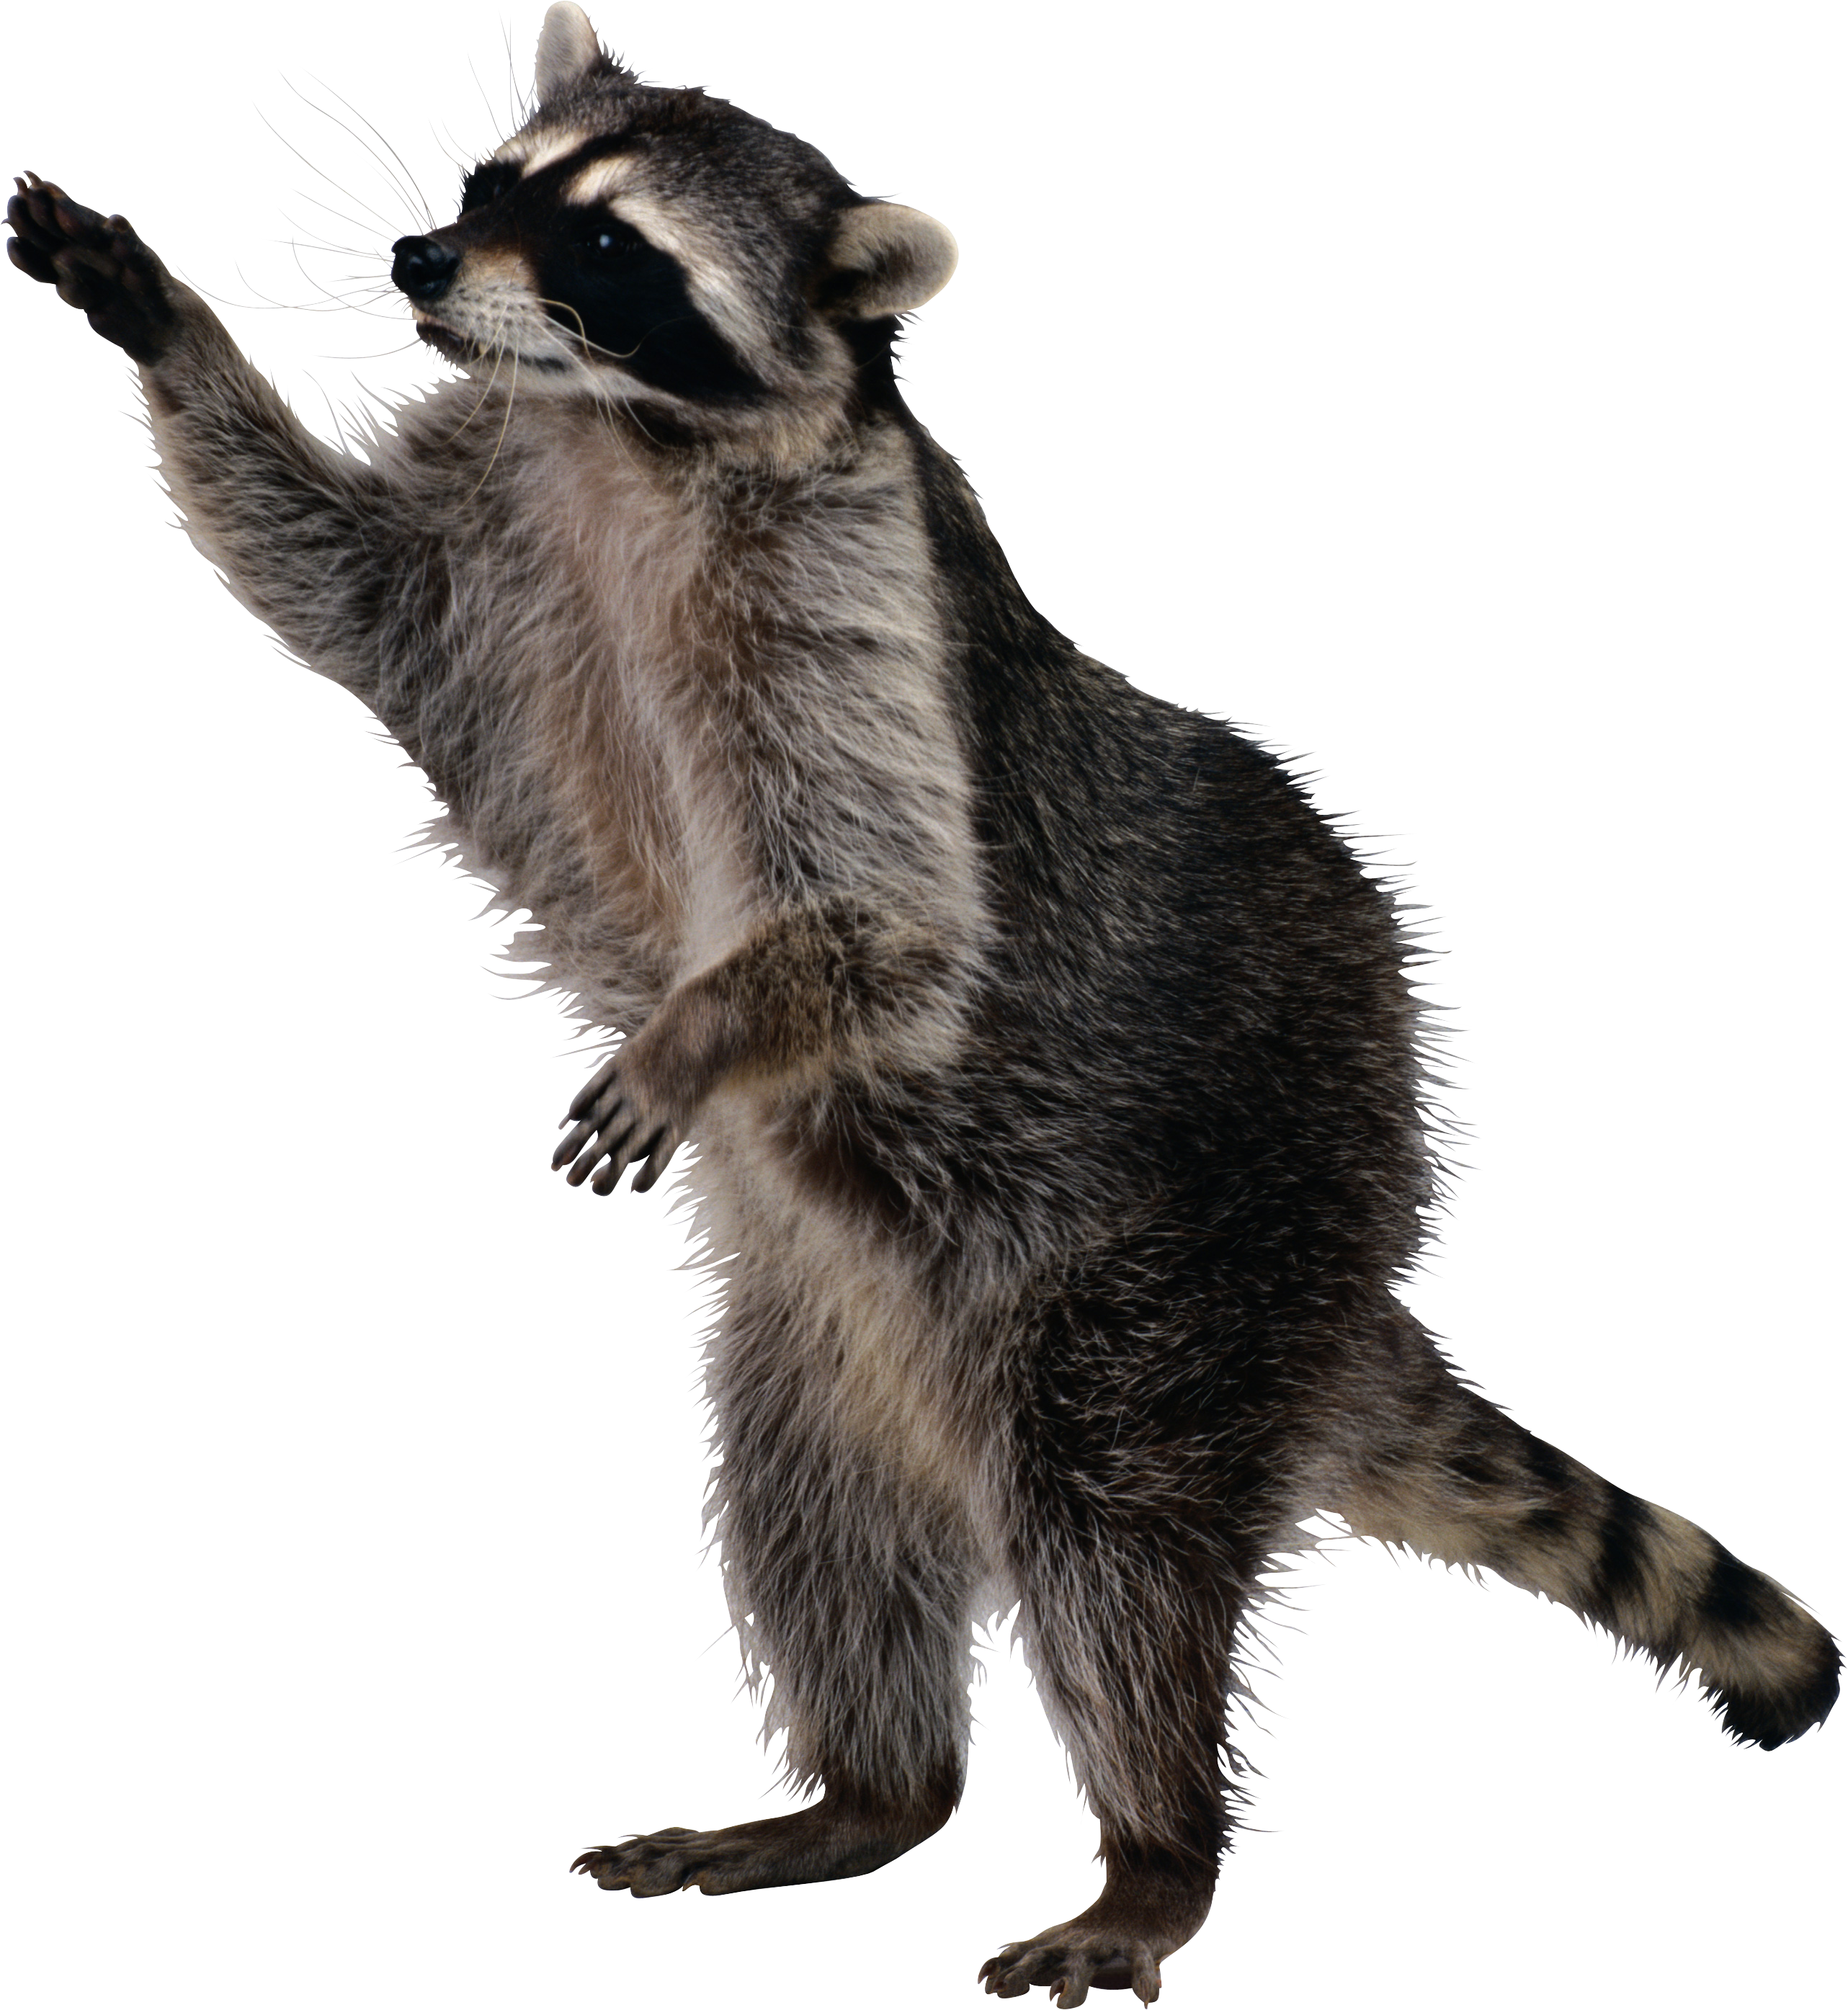 Stock images png. Raccoon